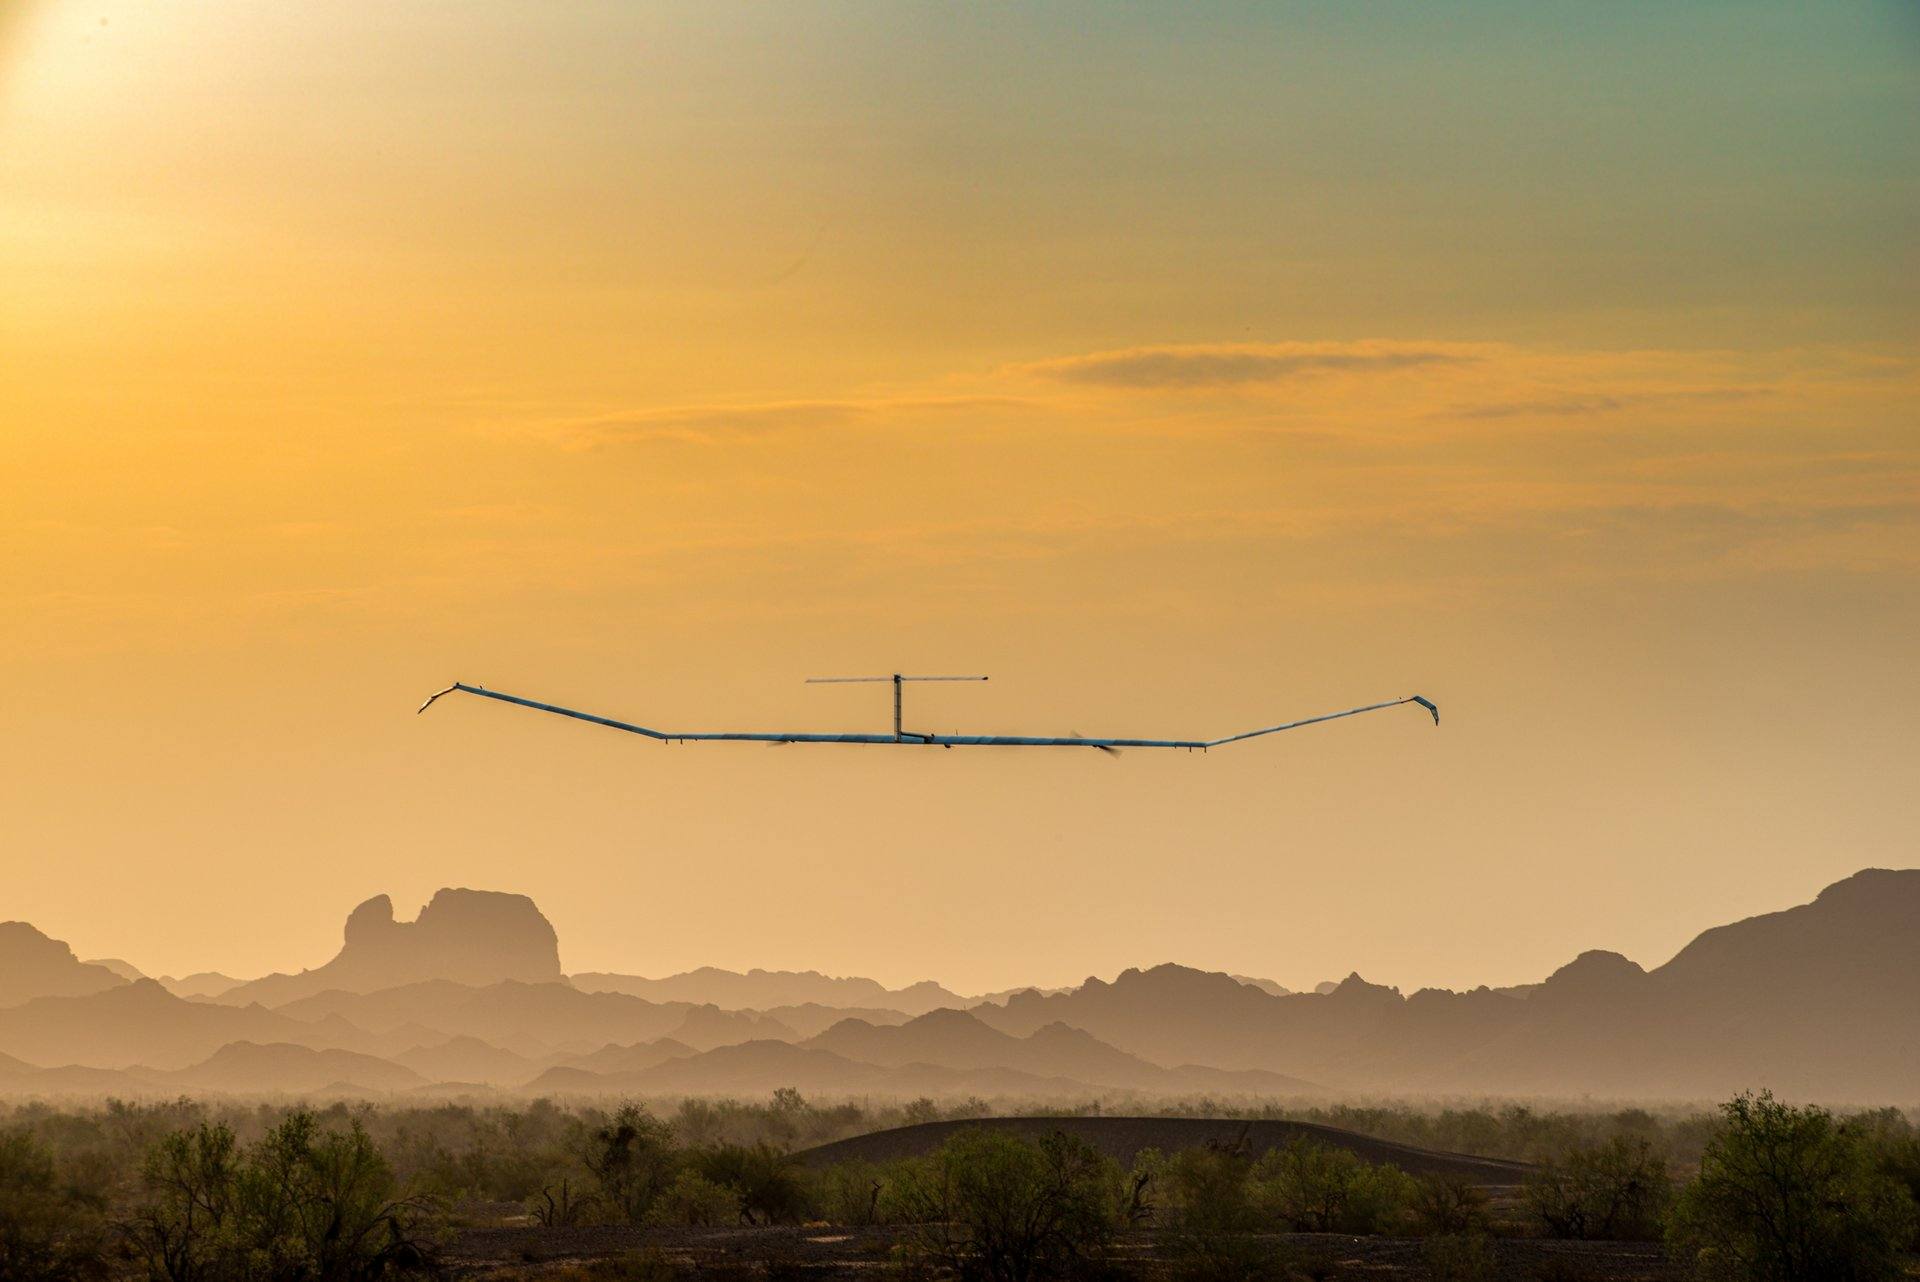 The drone Zephyr stayed flying for 18 days – with solar energy